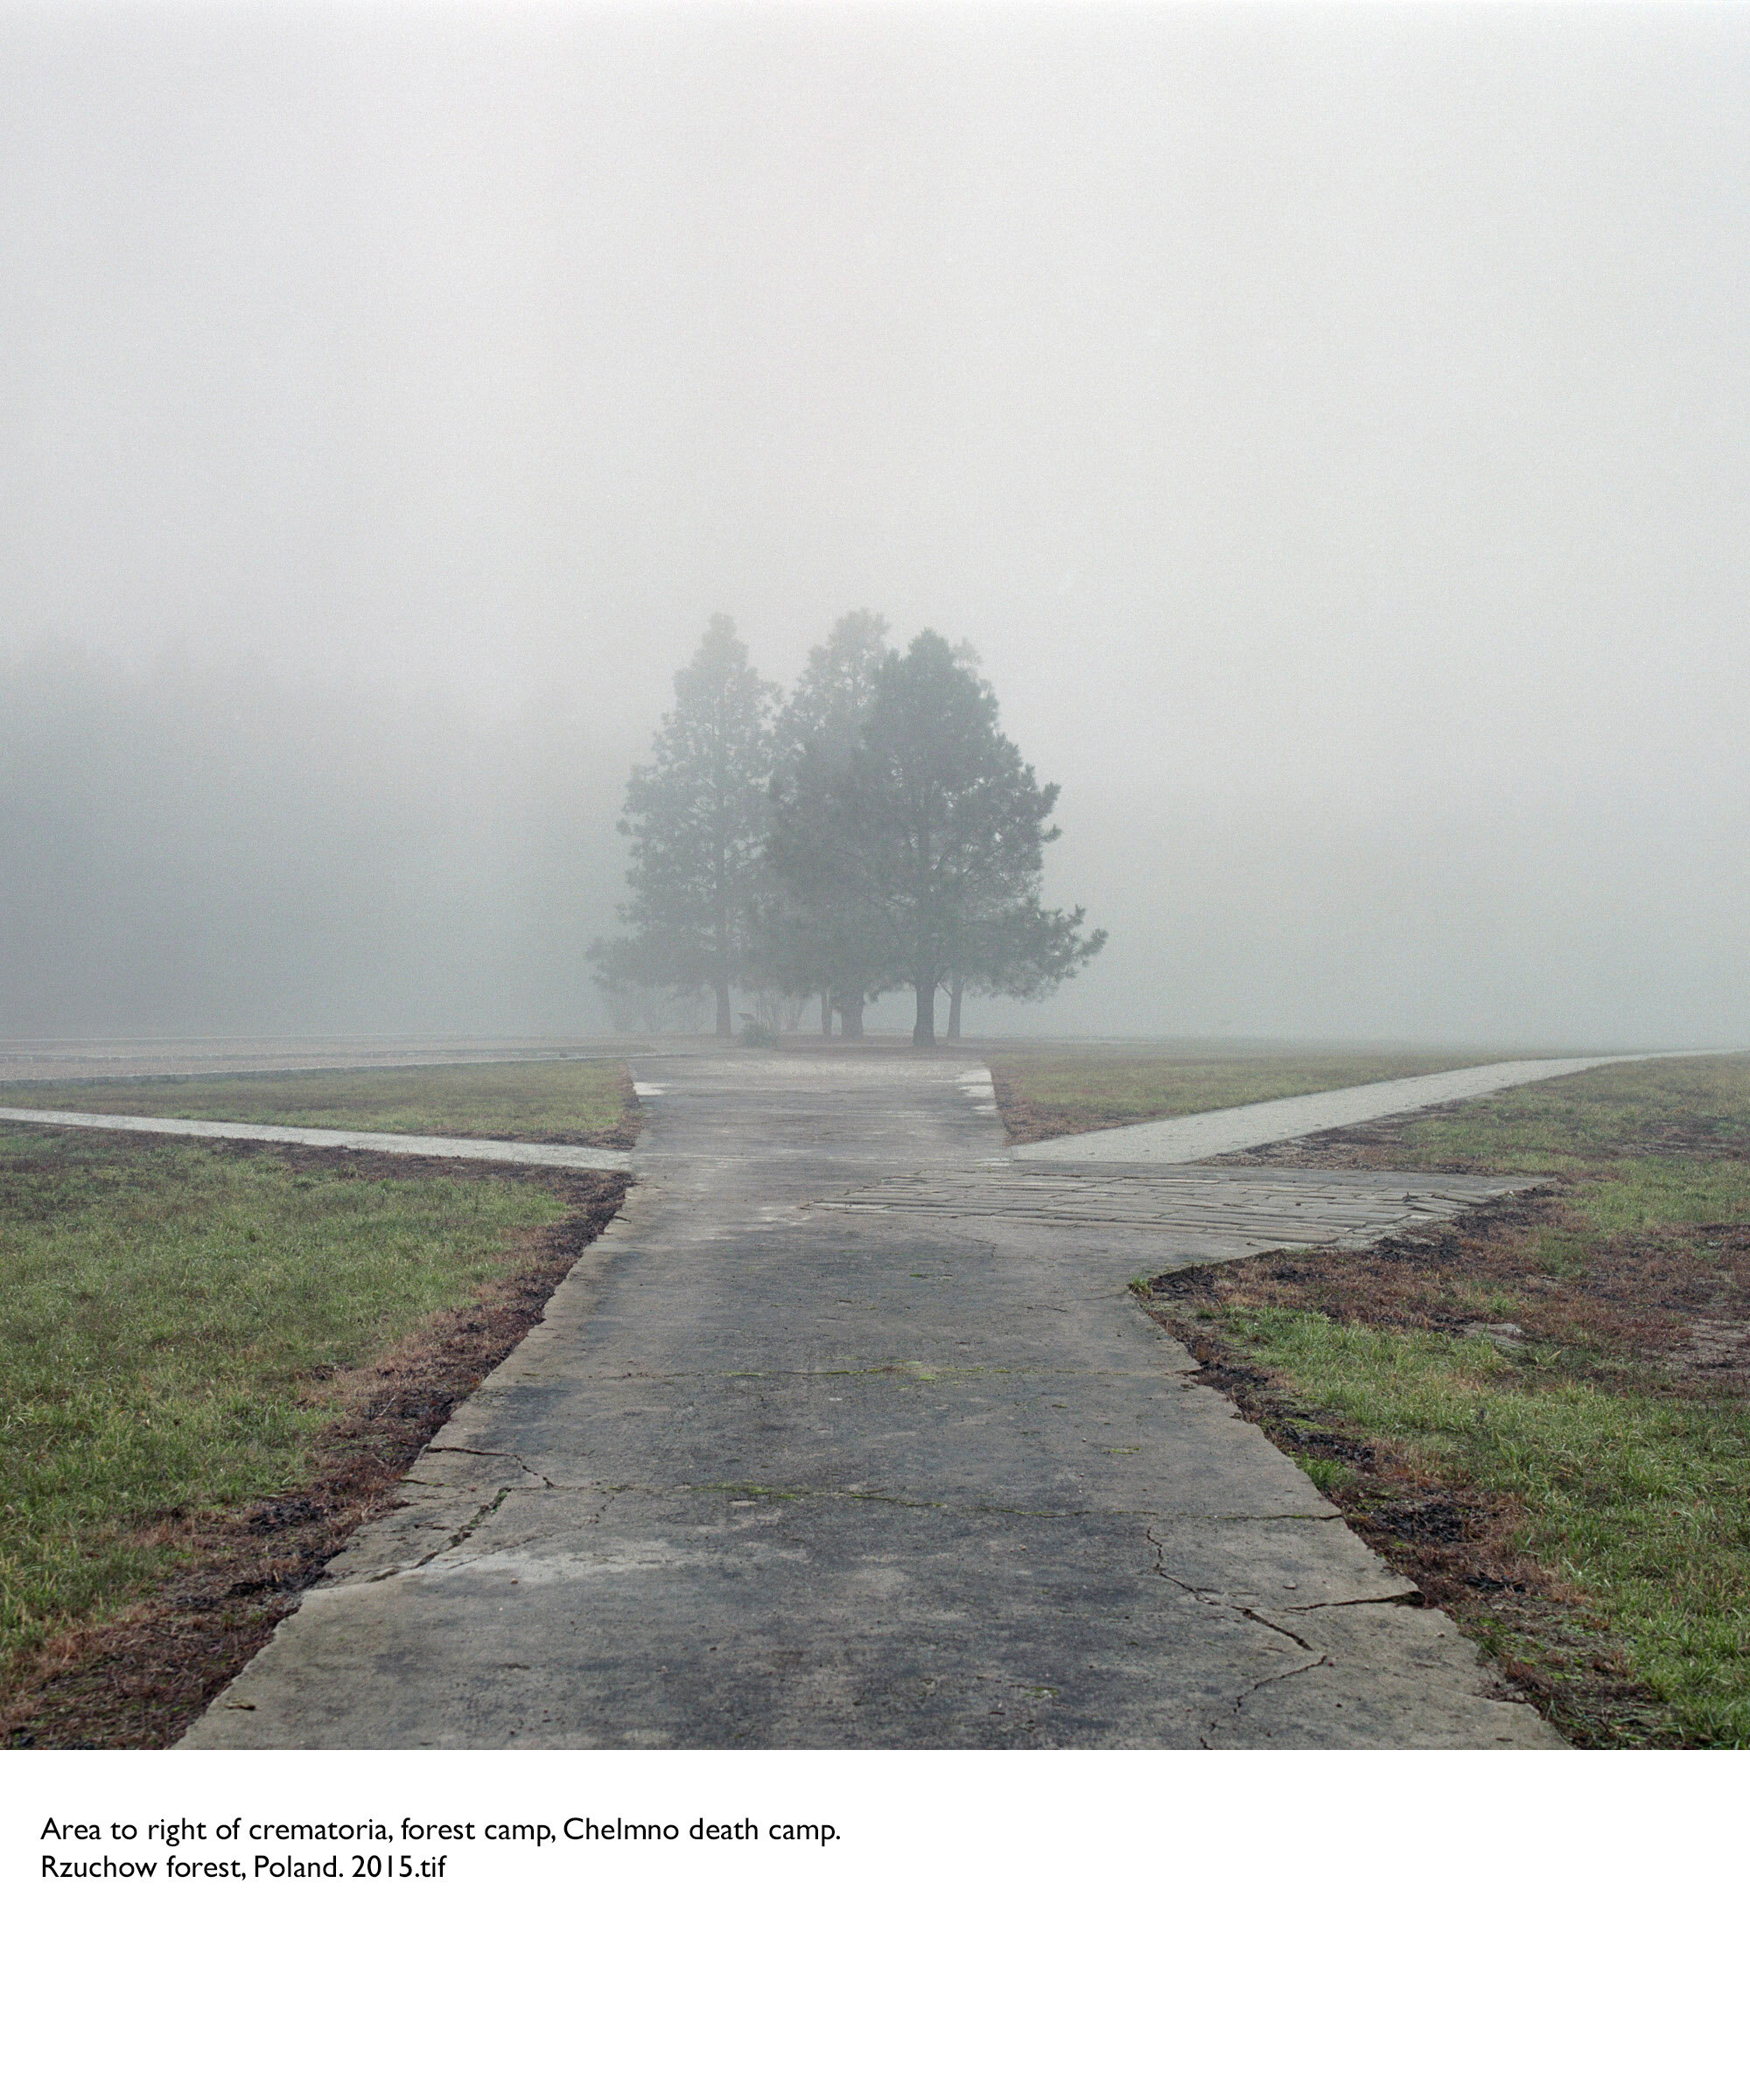 Area to right of crematoria, forest camp, Chelmno death camp.Rzuchow forest, Poland. 2015.tif